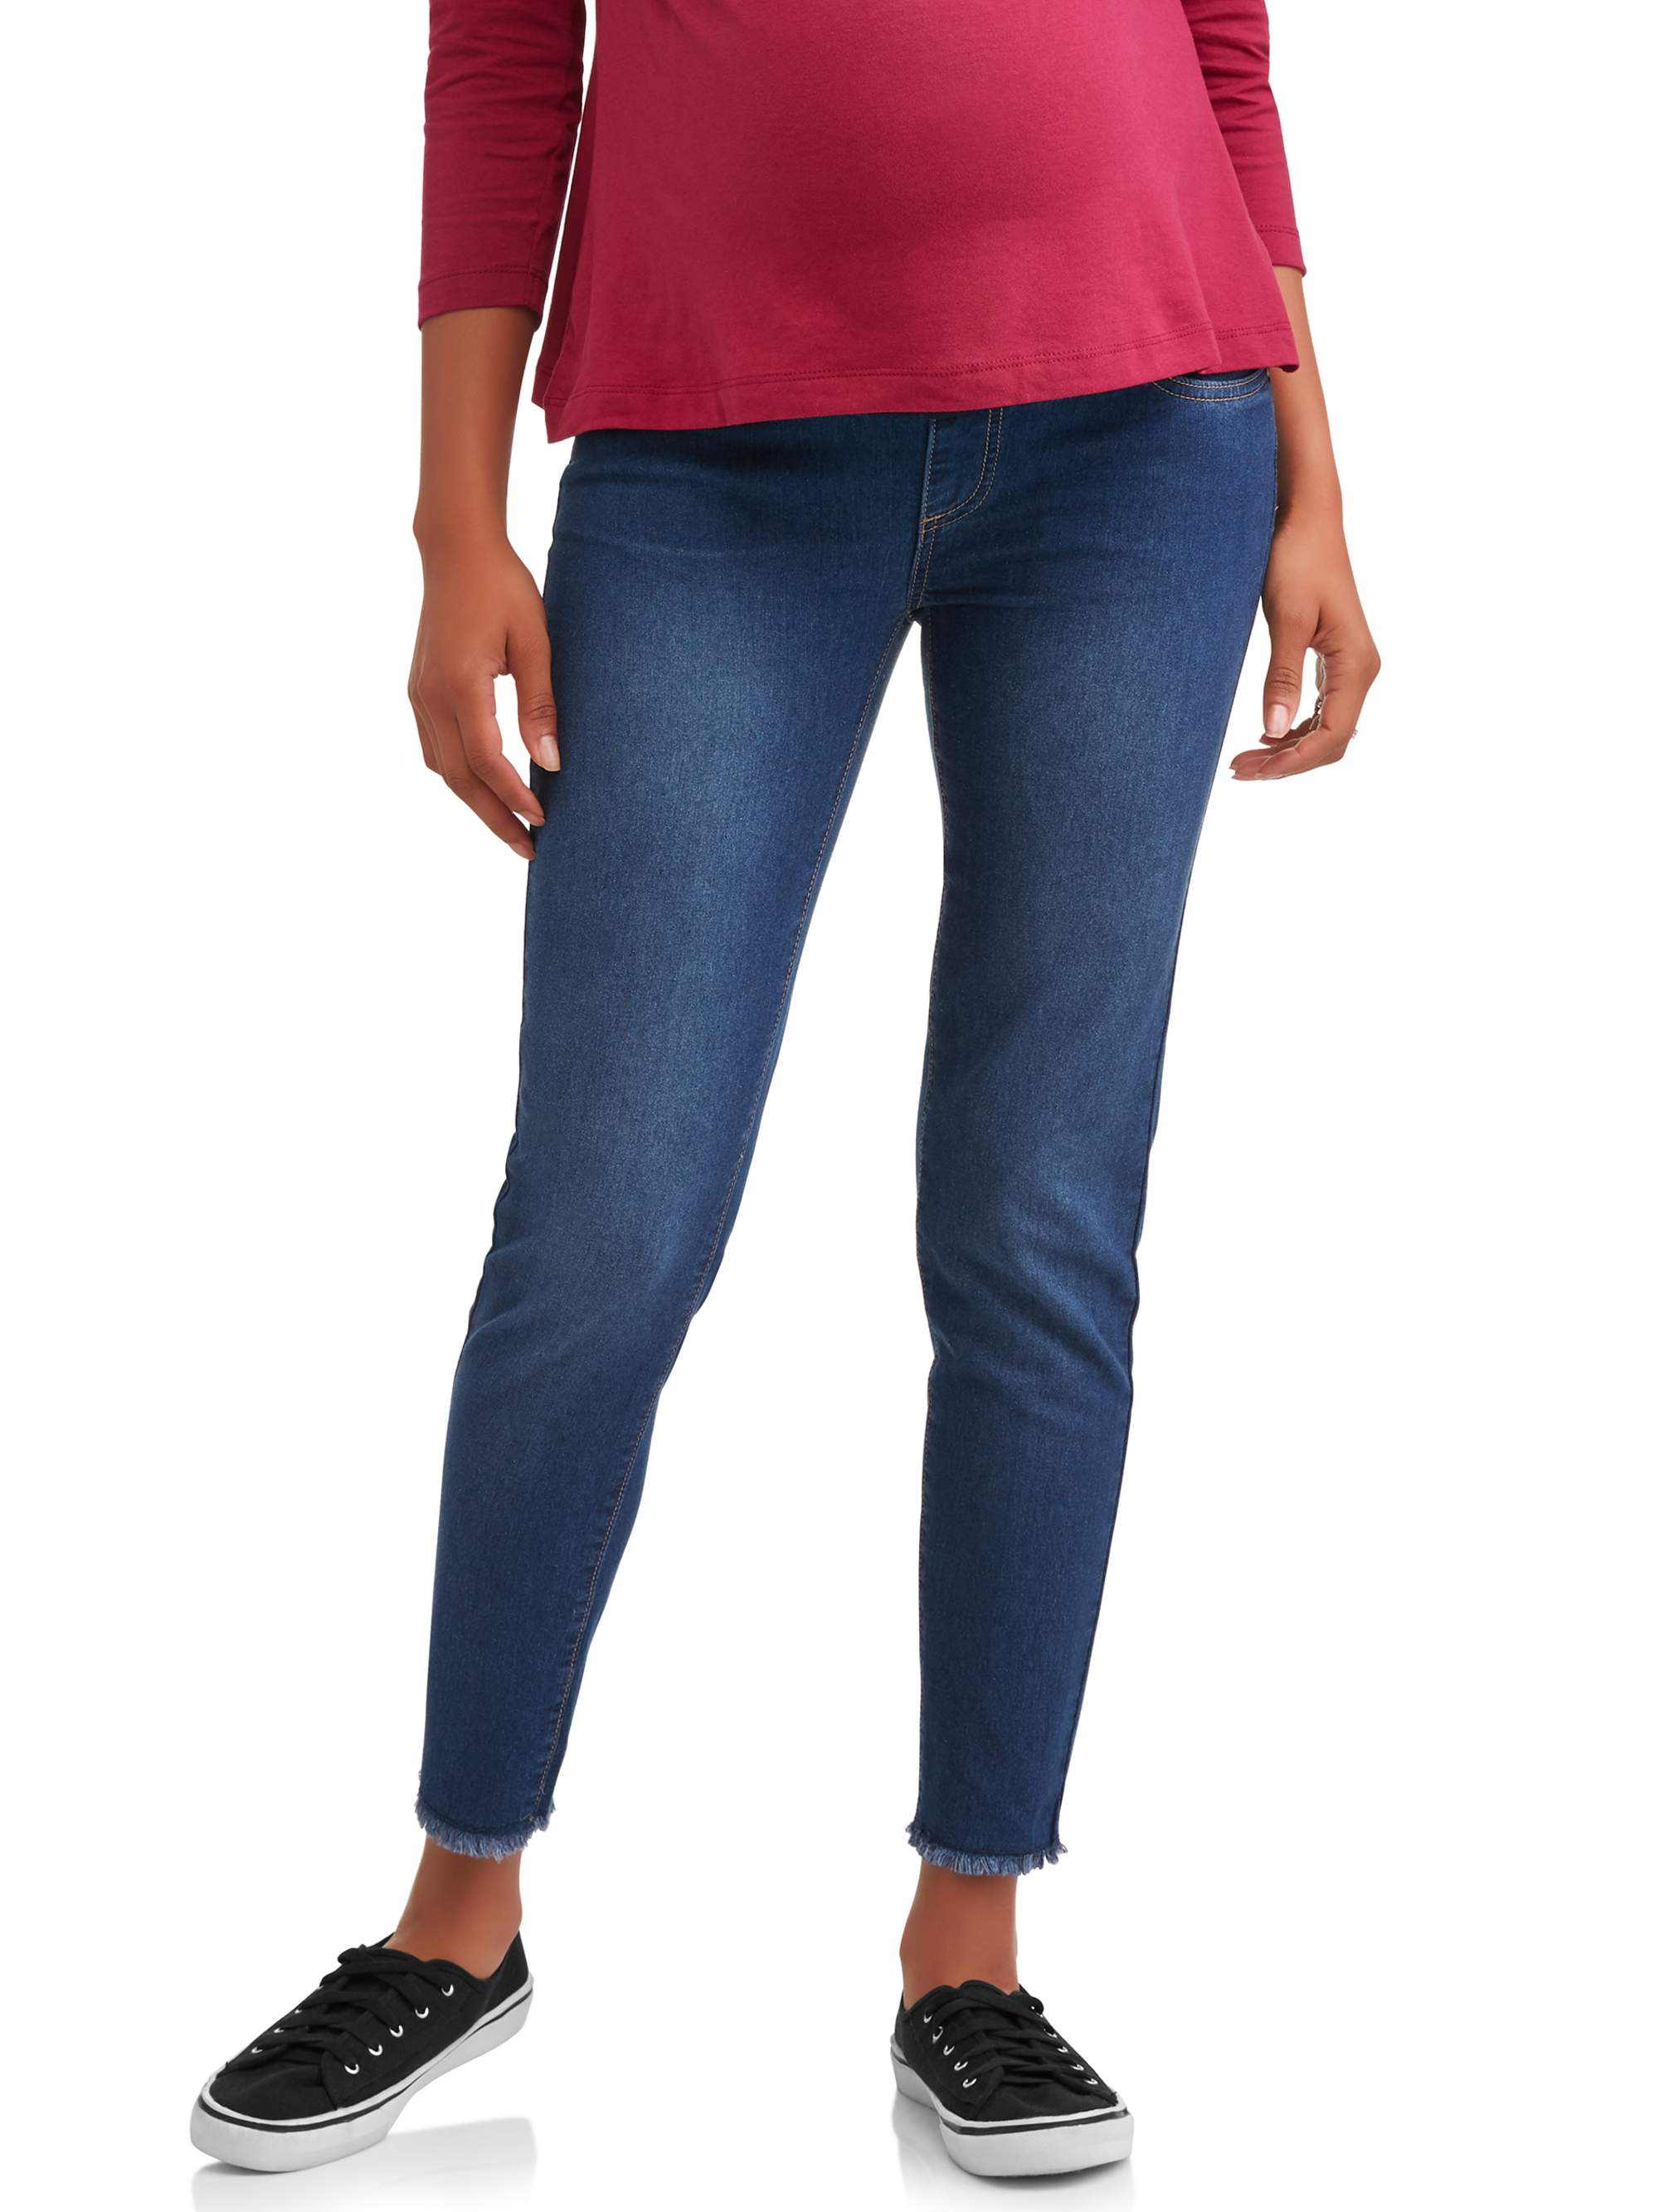 Maternity Under Belly Frayed Hem Skinny Jeans - Available in Plus Sizes